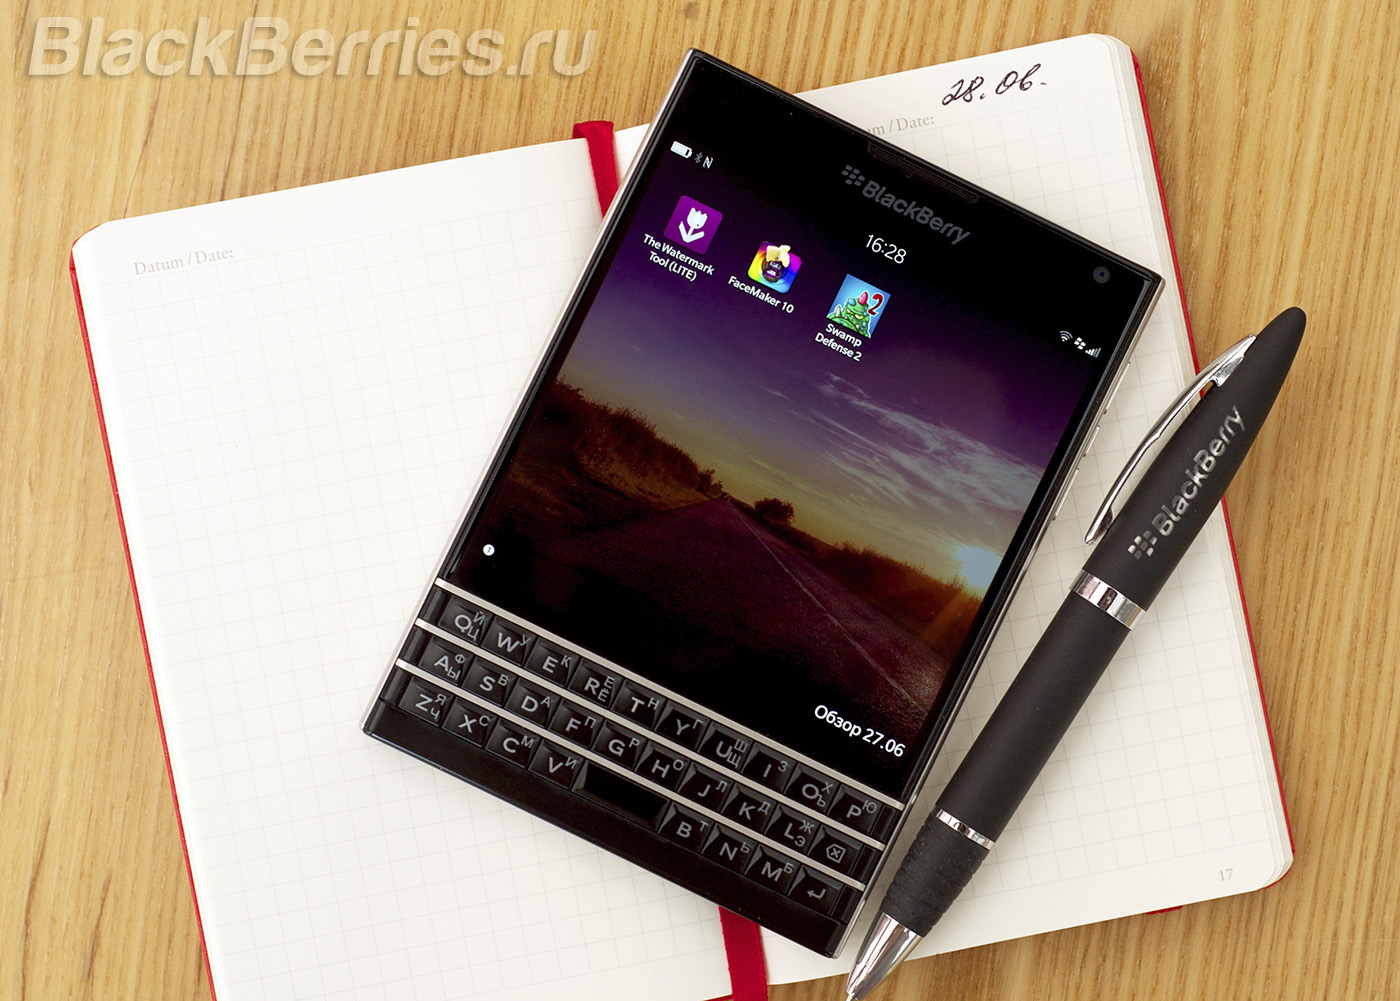 BlackBerry-Apps-28-06-2